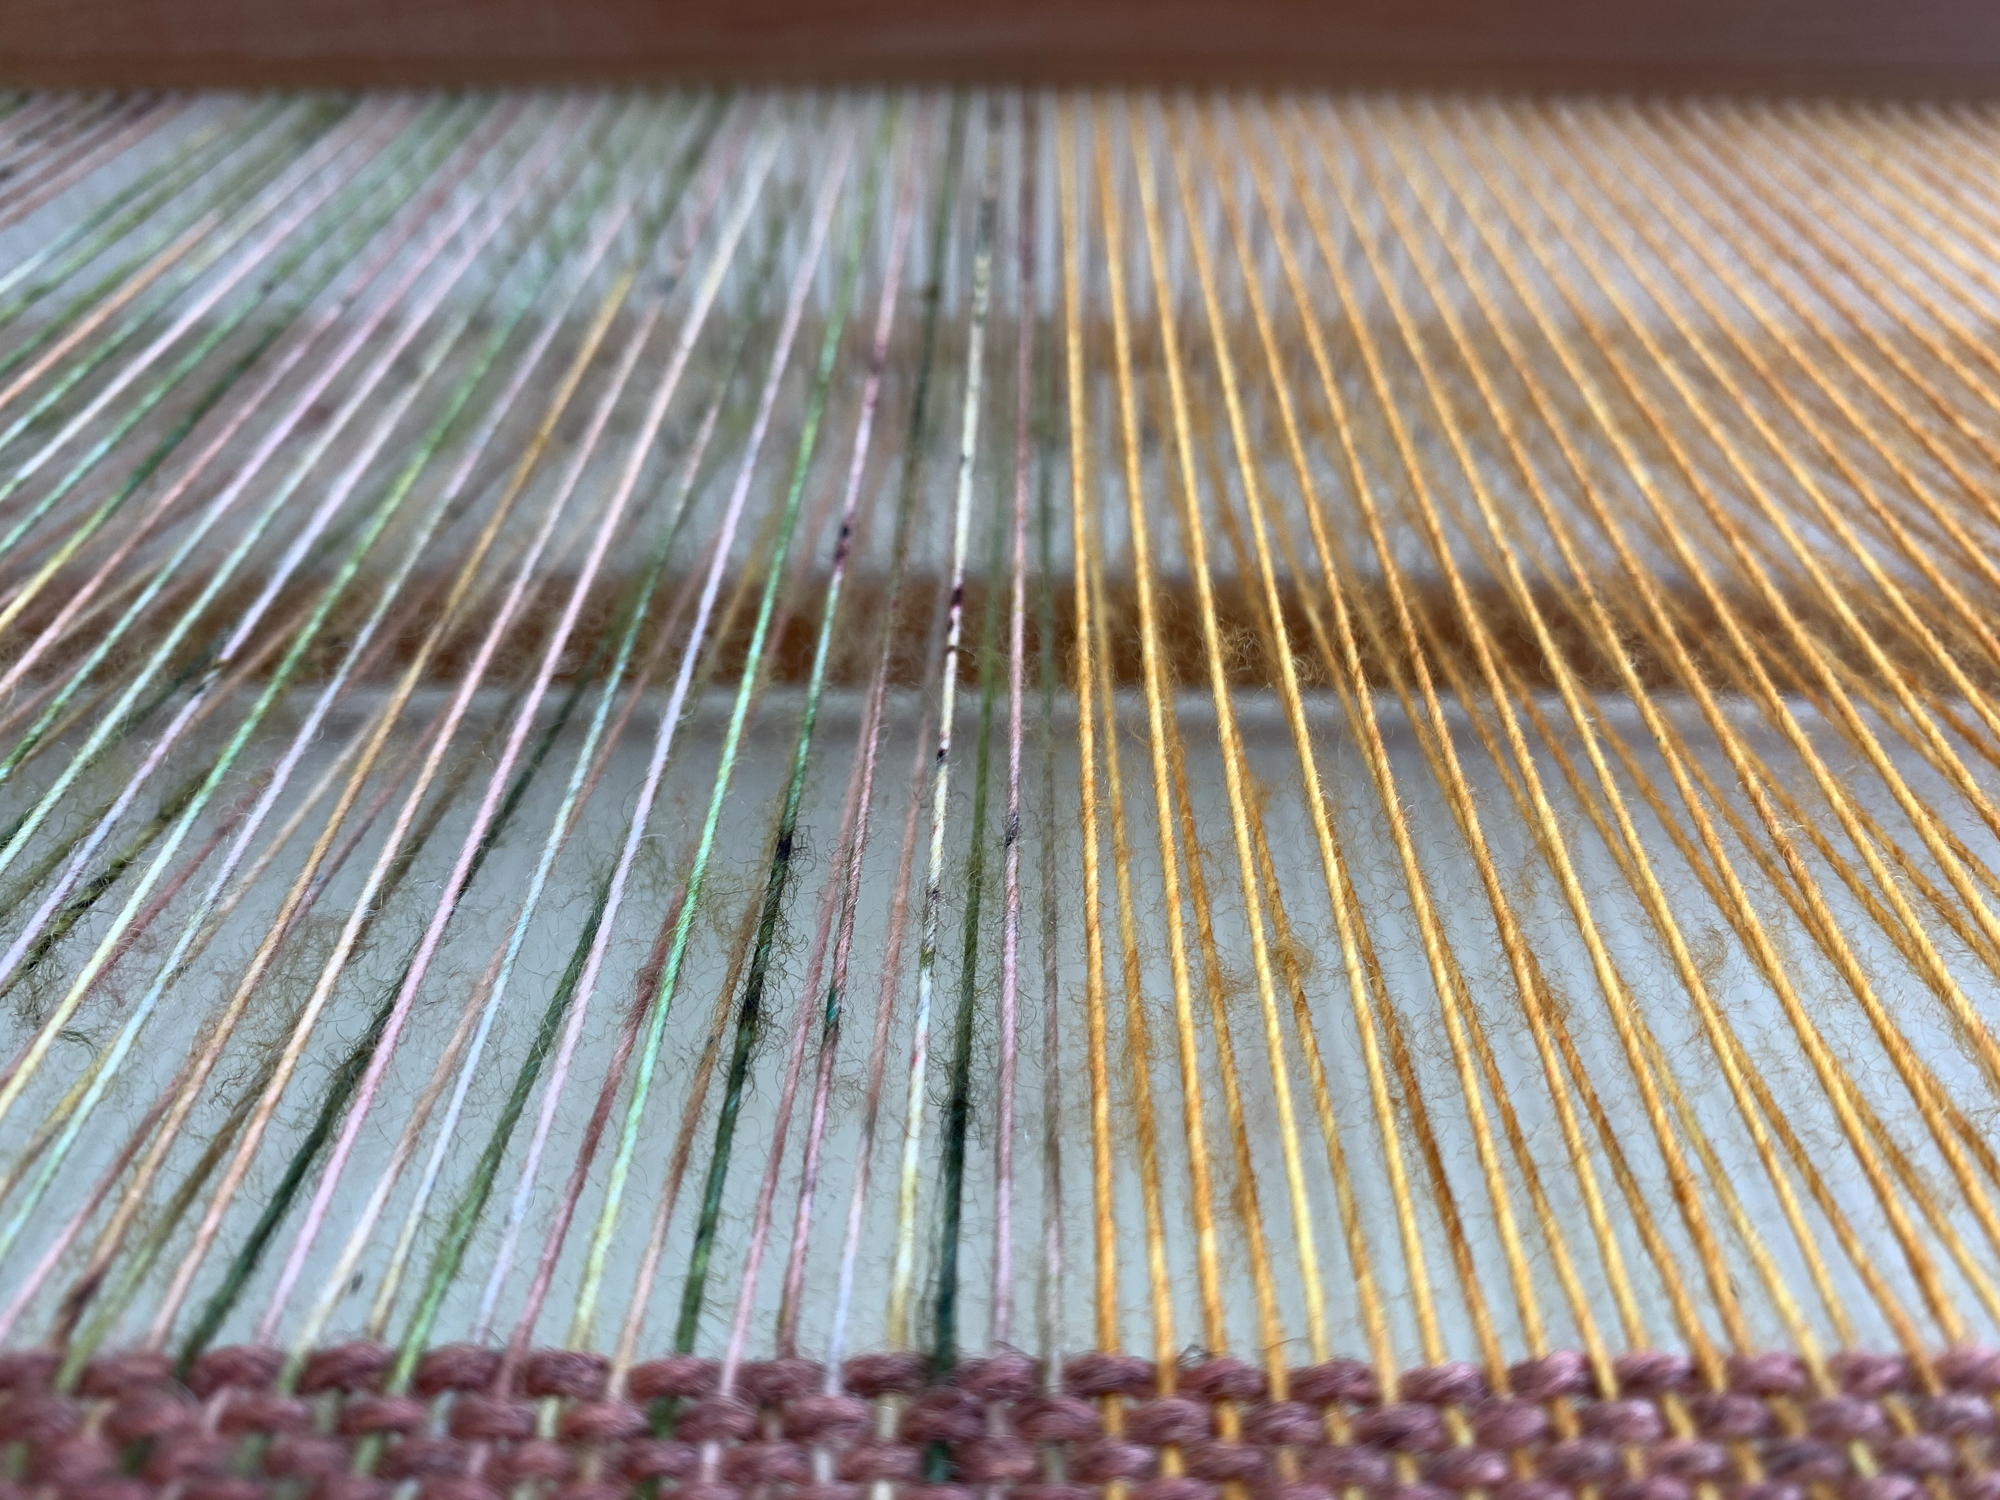 Warp threads using indie-dyed merino yarn